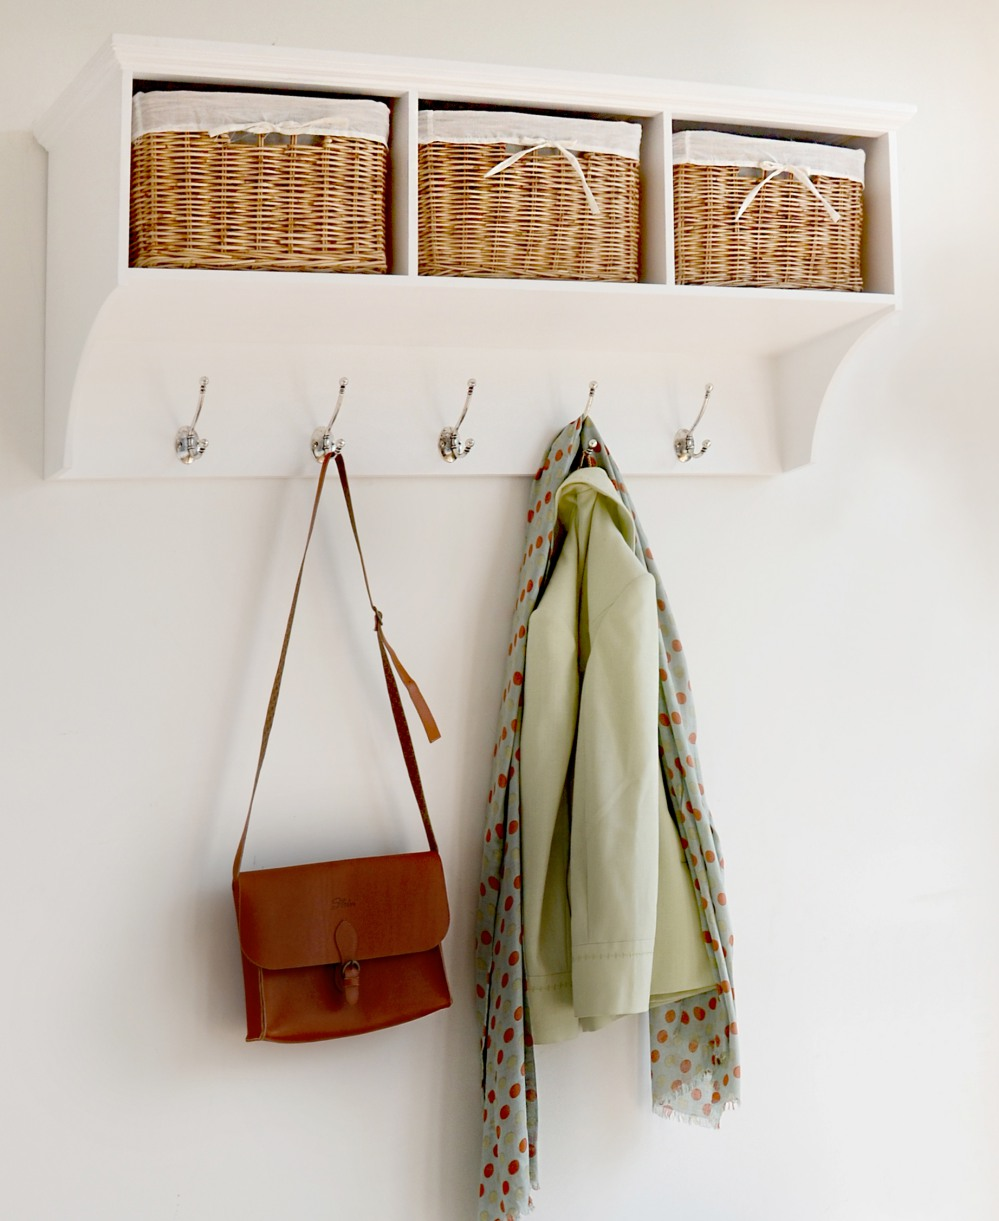 Coat Hanging Solutions tetbury white coat hanger with 3 natural wicker baskets, hallway